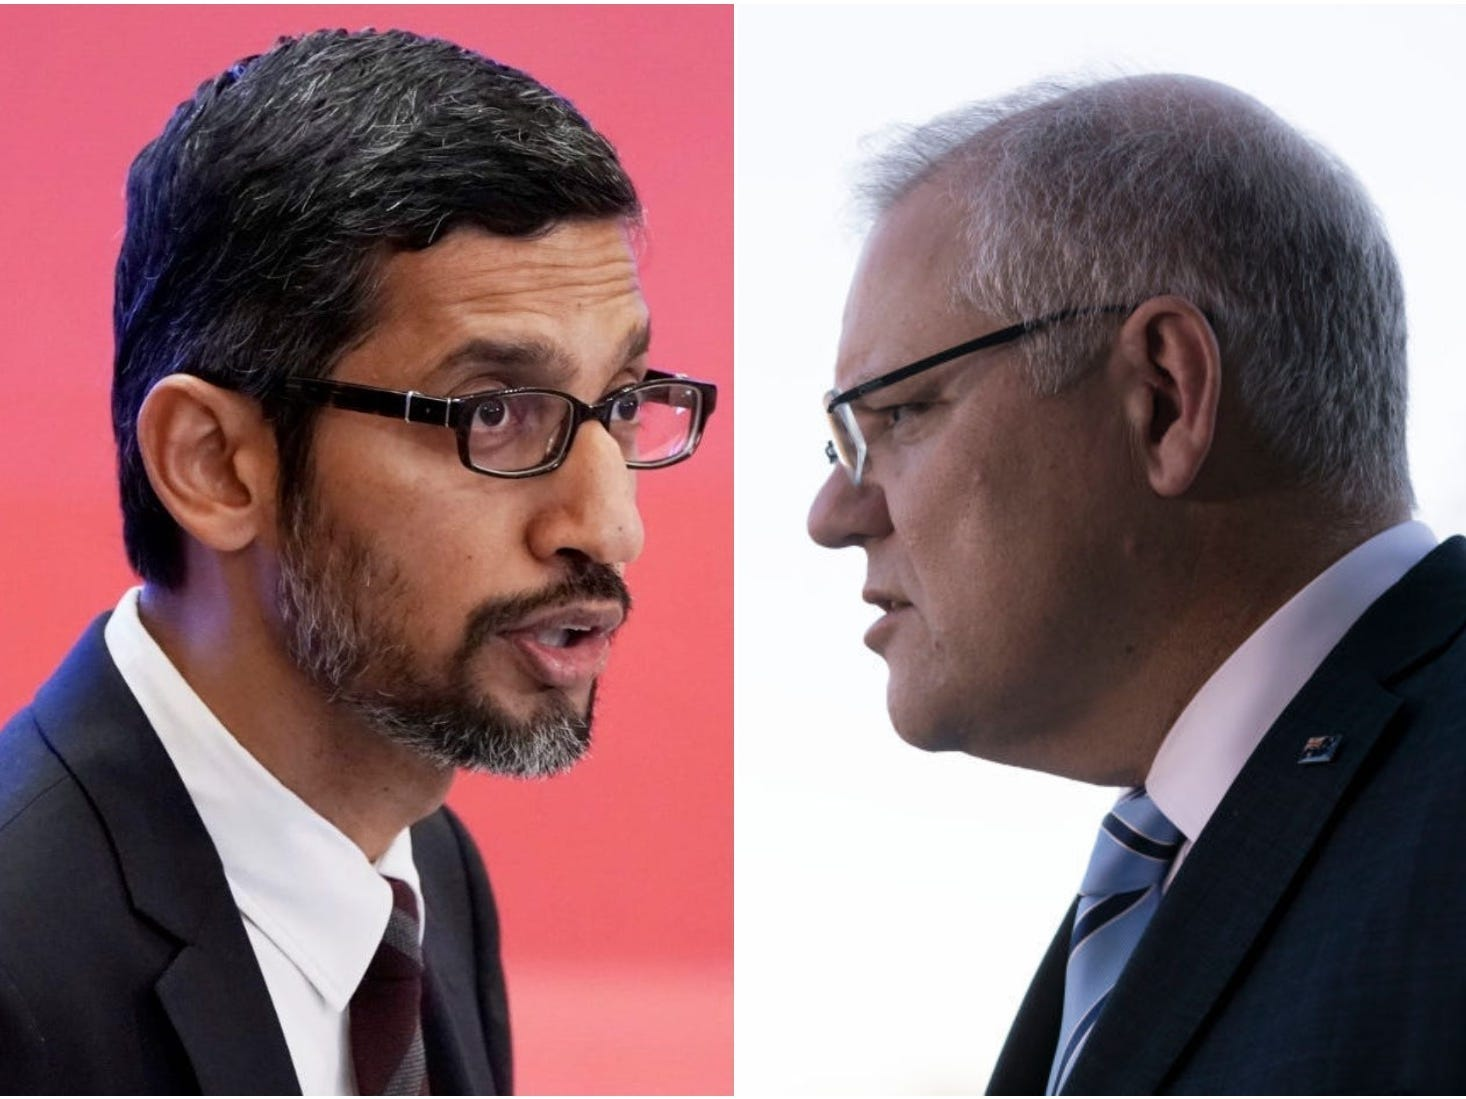 Google's possibility to give up Australia follows years of wrangling with news moguls esteem Rupert Murdoch and lawmakers panicked by its energy